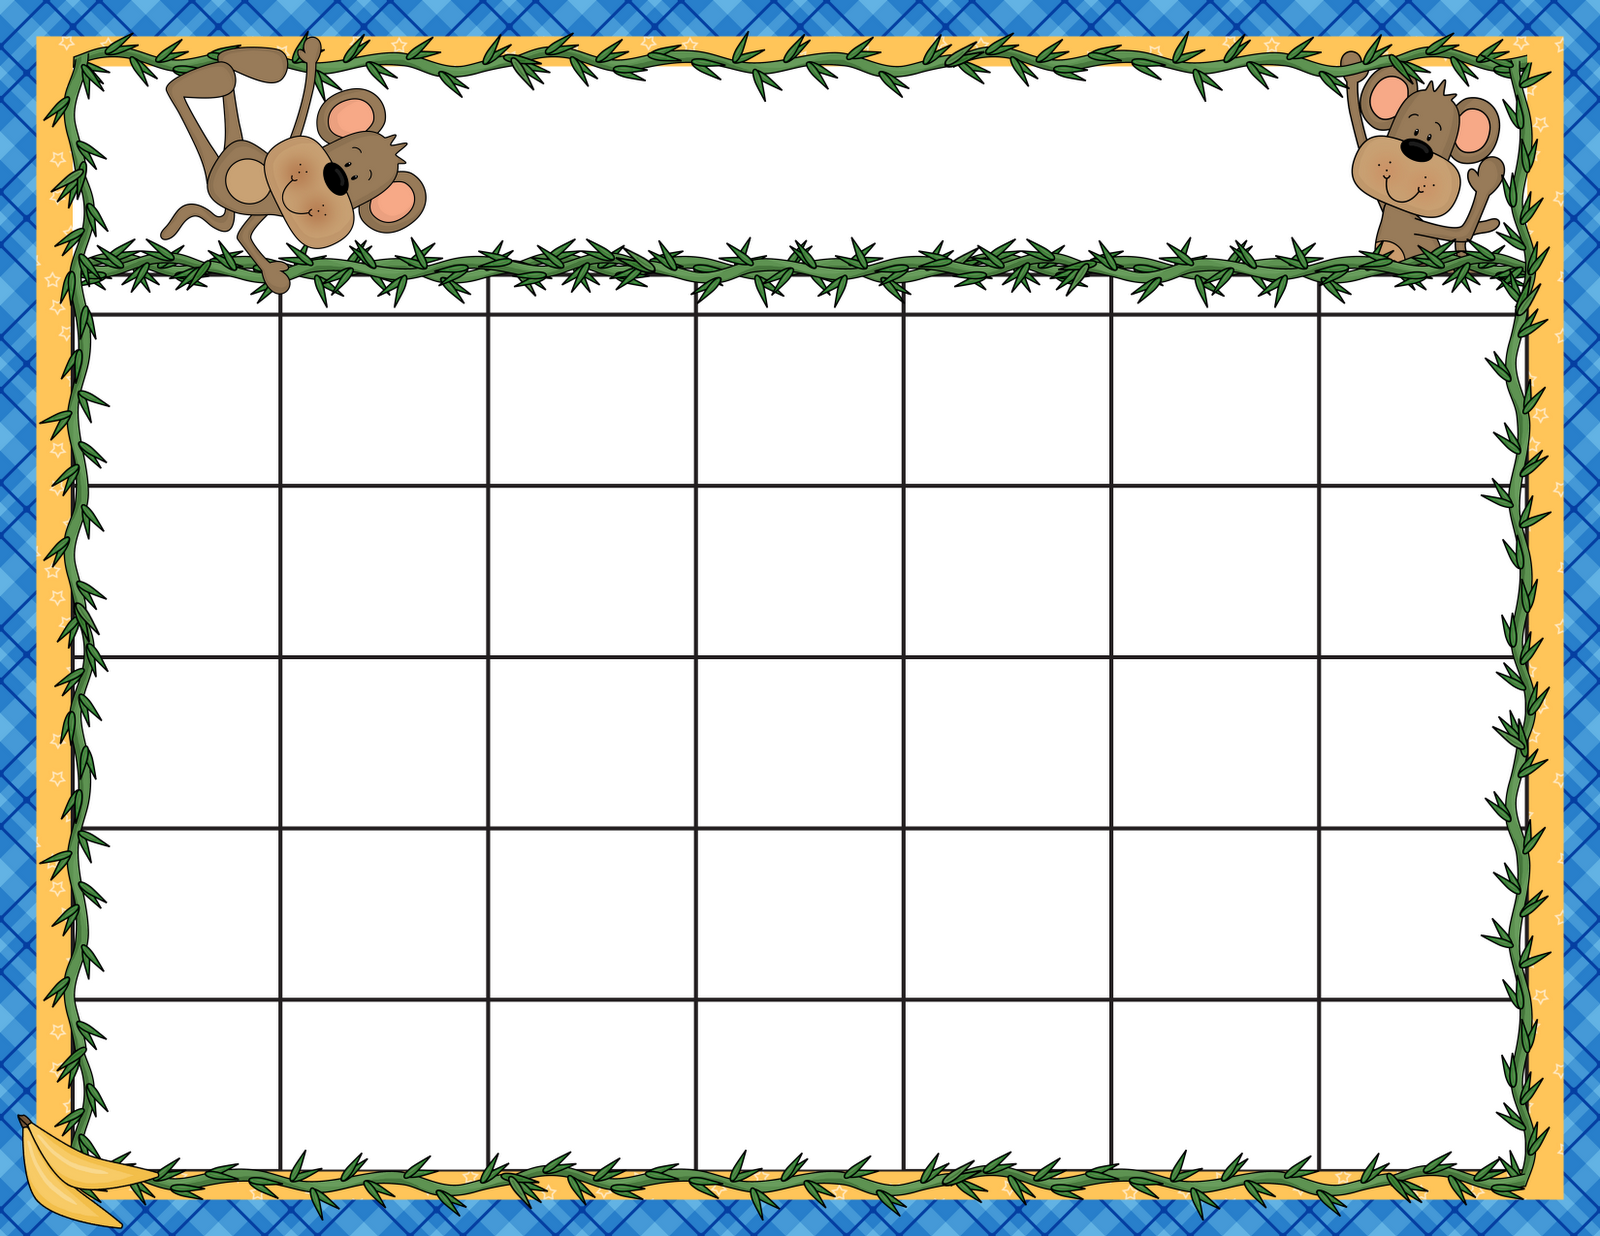 6 Images of Preschool Calendar Printable November 2014